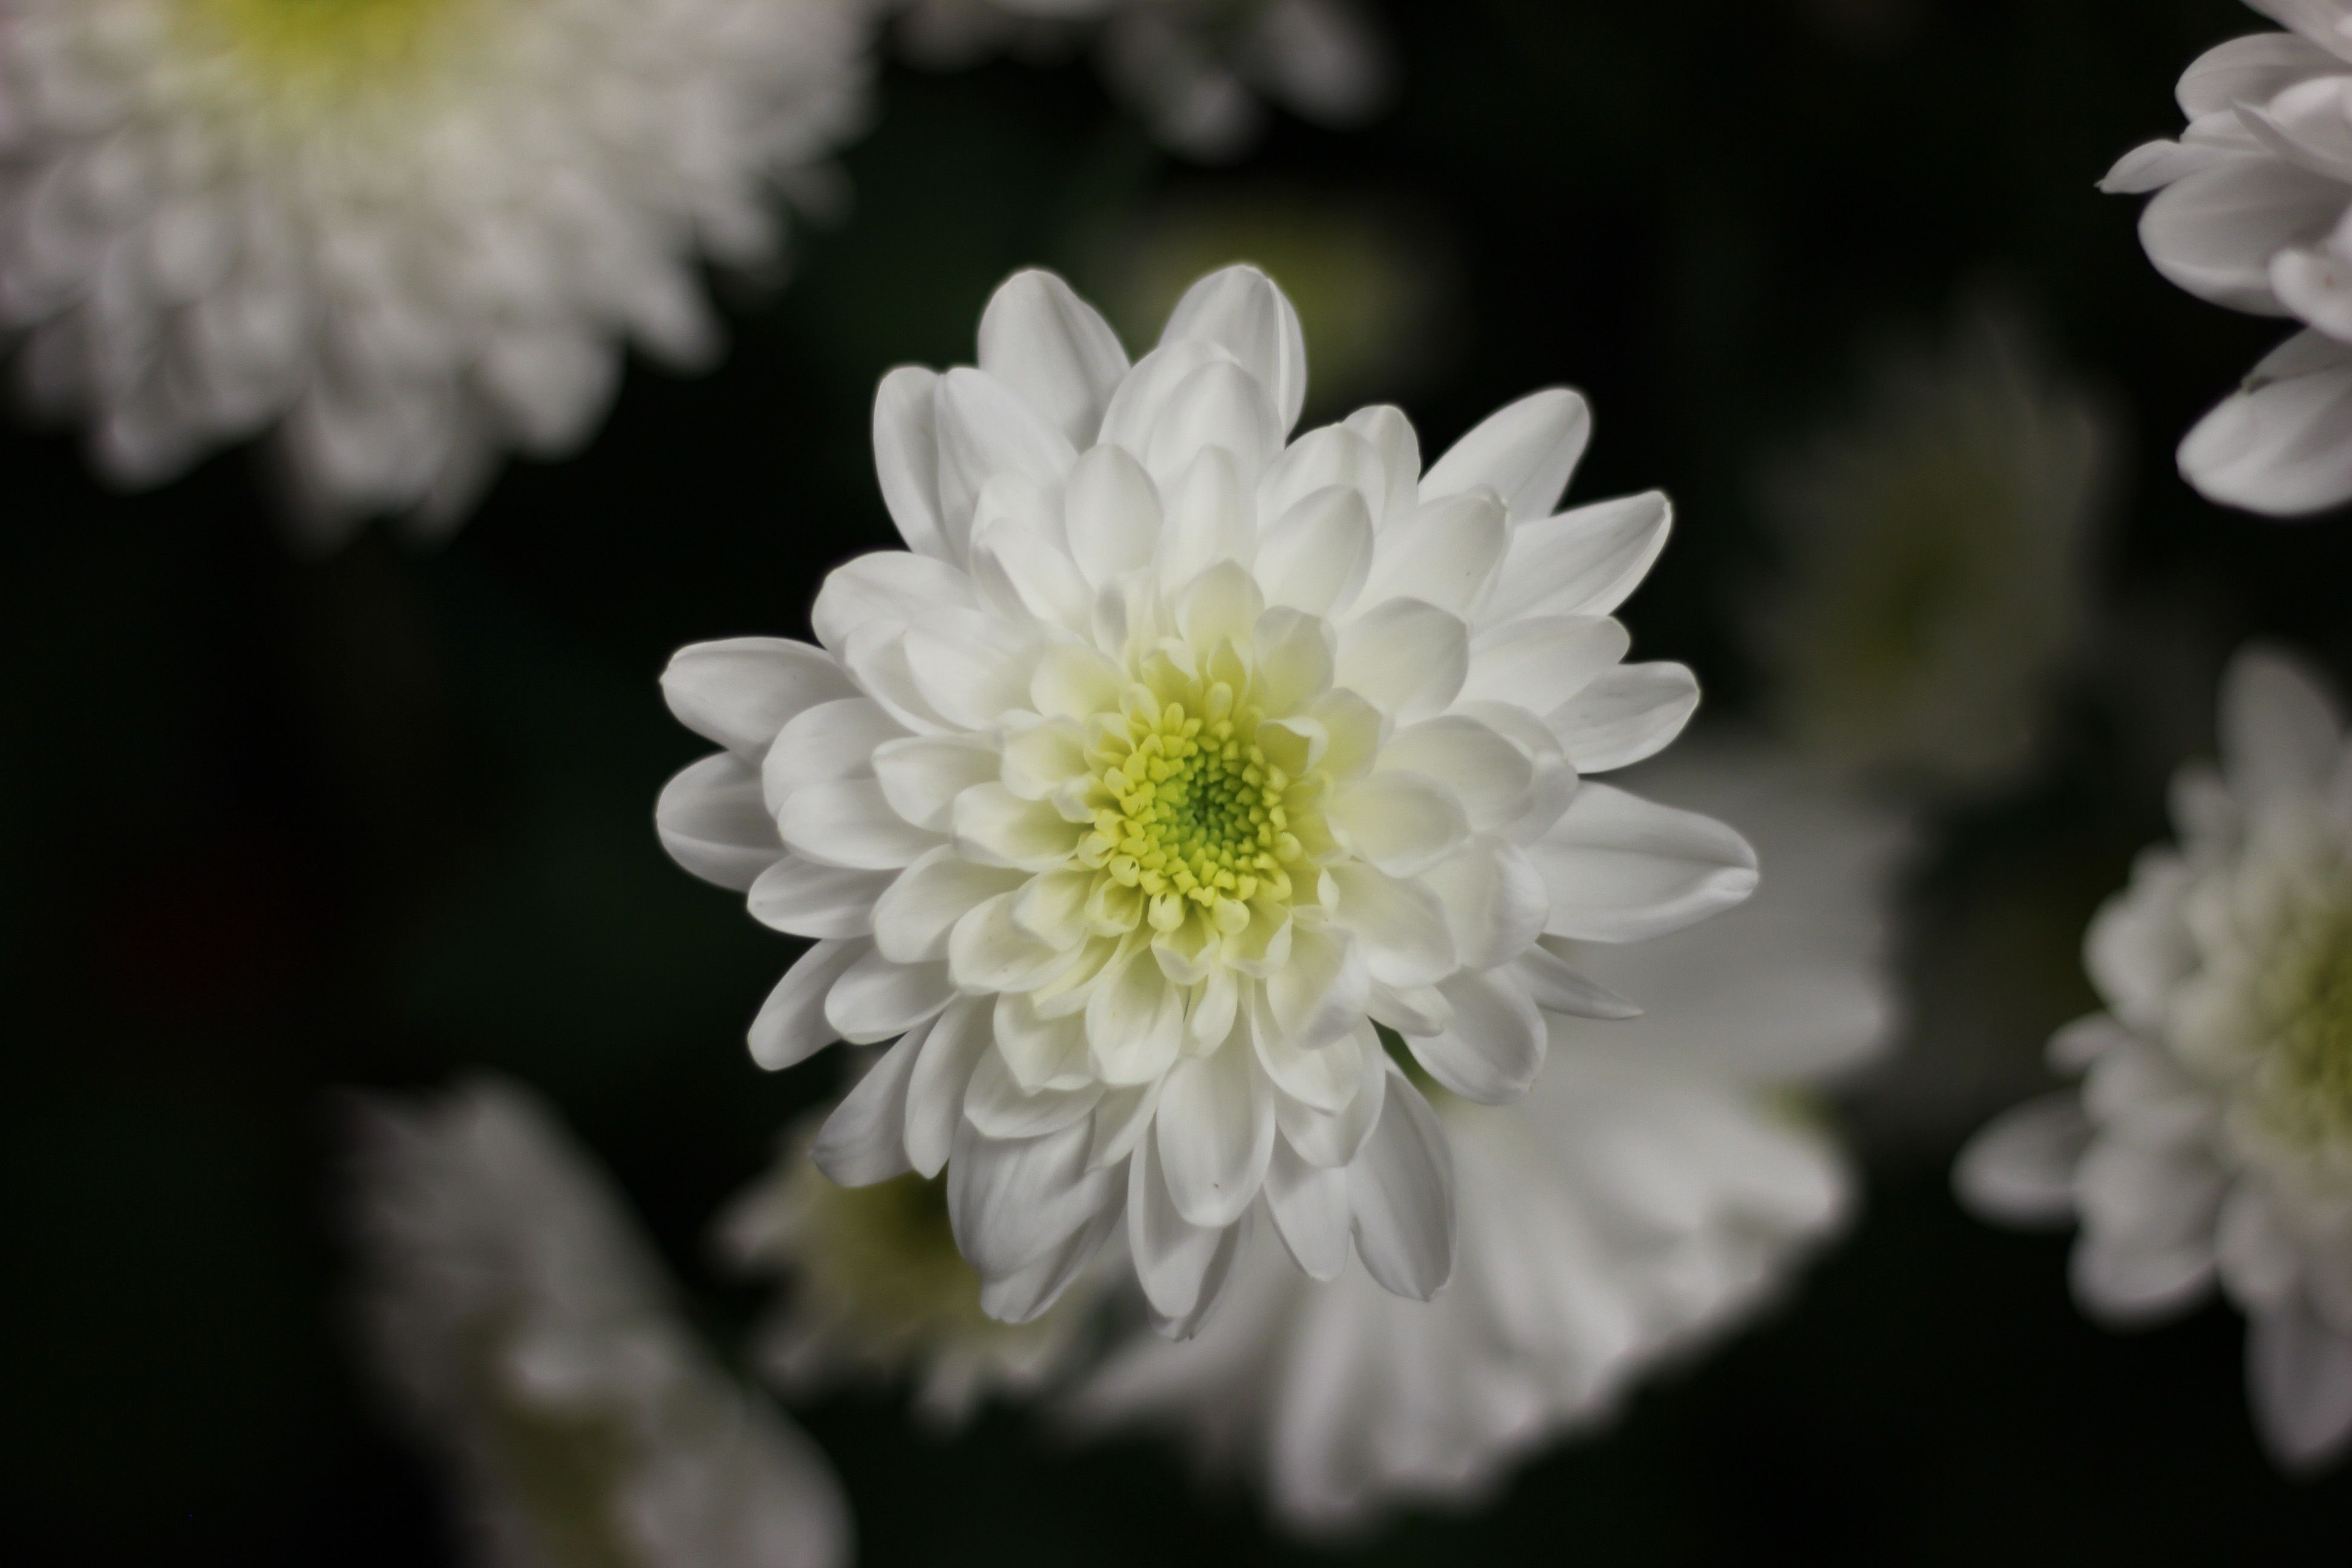 Attachment file for beautiful nature wallpaper for desktop with attachment file for beautiful nature wallpaper for desktop with white mums flower mightylinksfo